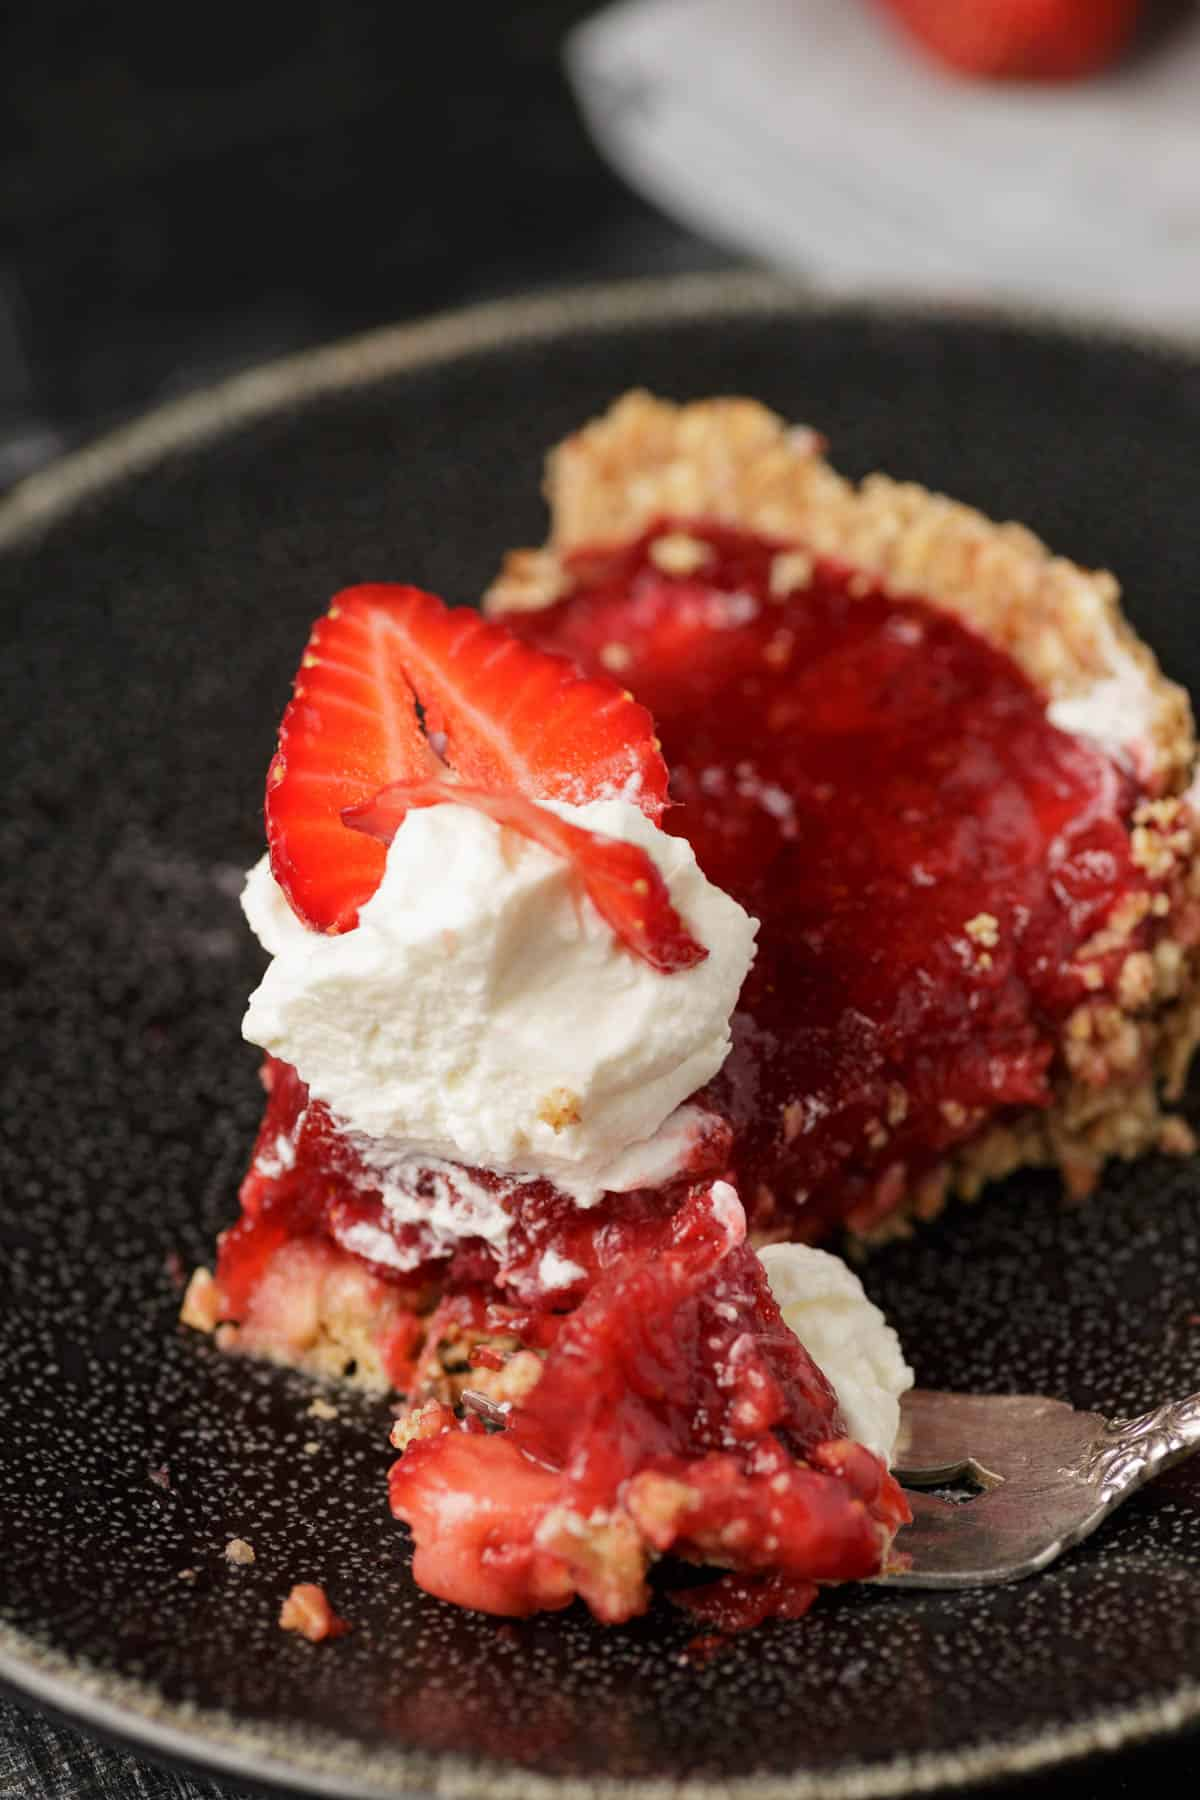 A bite of strawberry pie on a fork